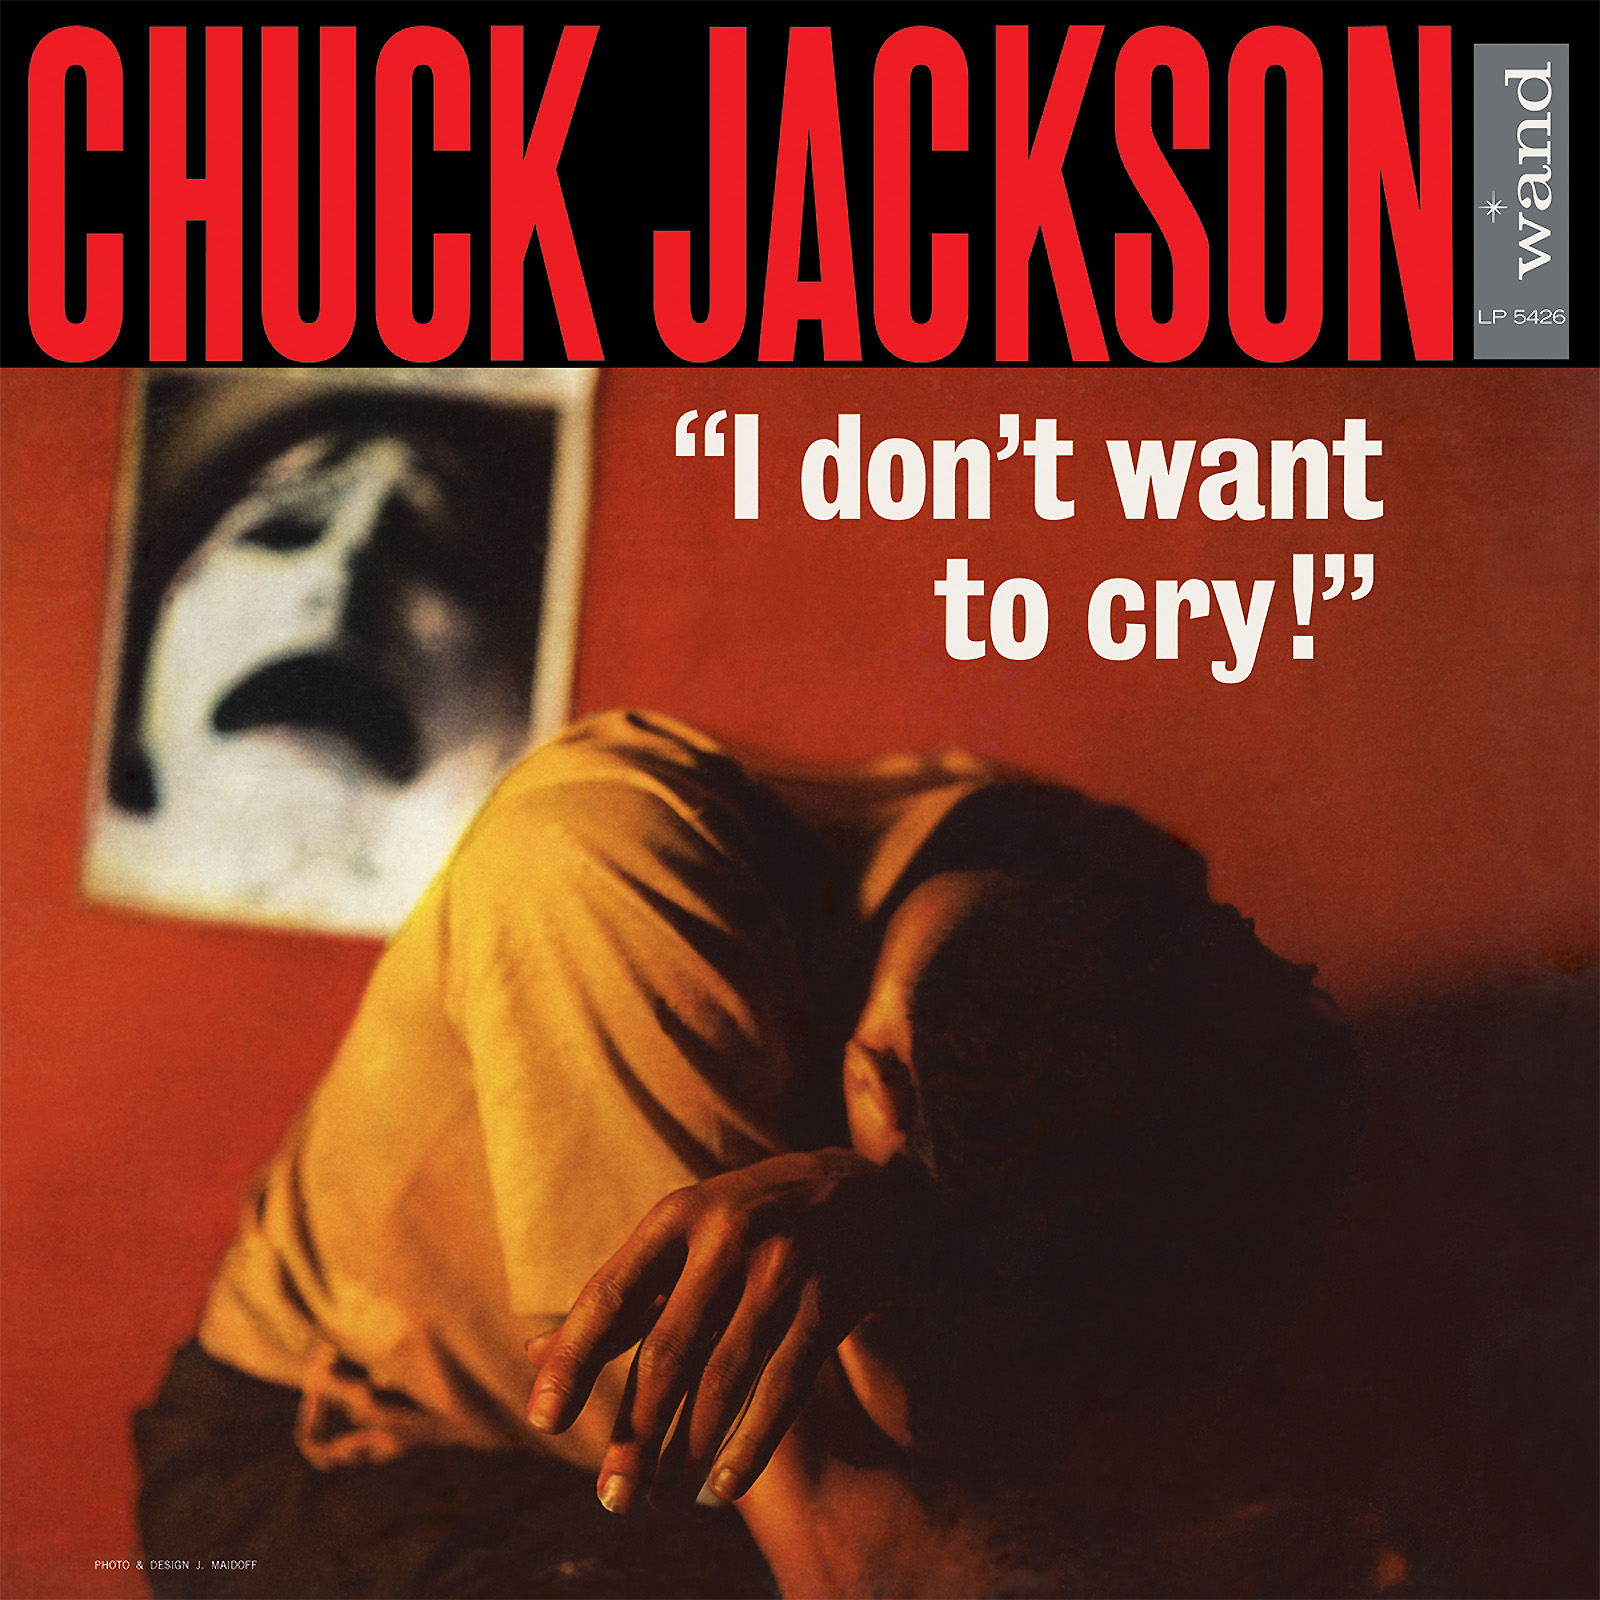 Jackson, Chuck - I Dont Want To Cry - 180 Gram LP